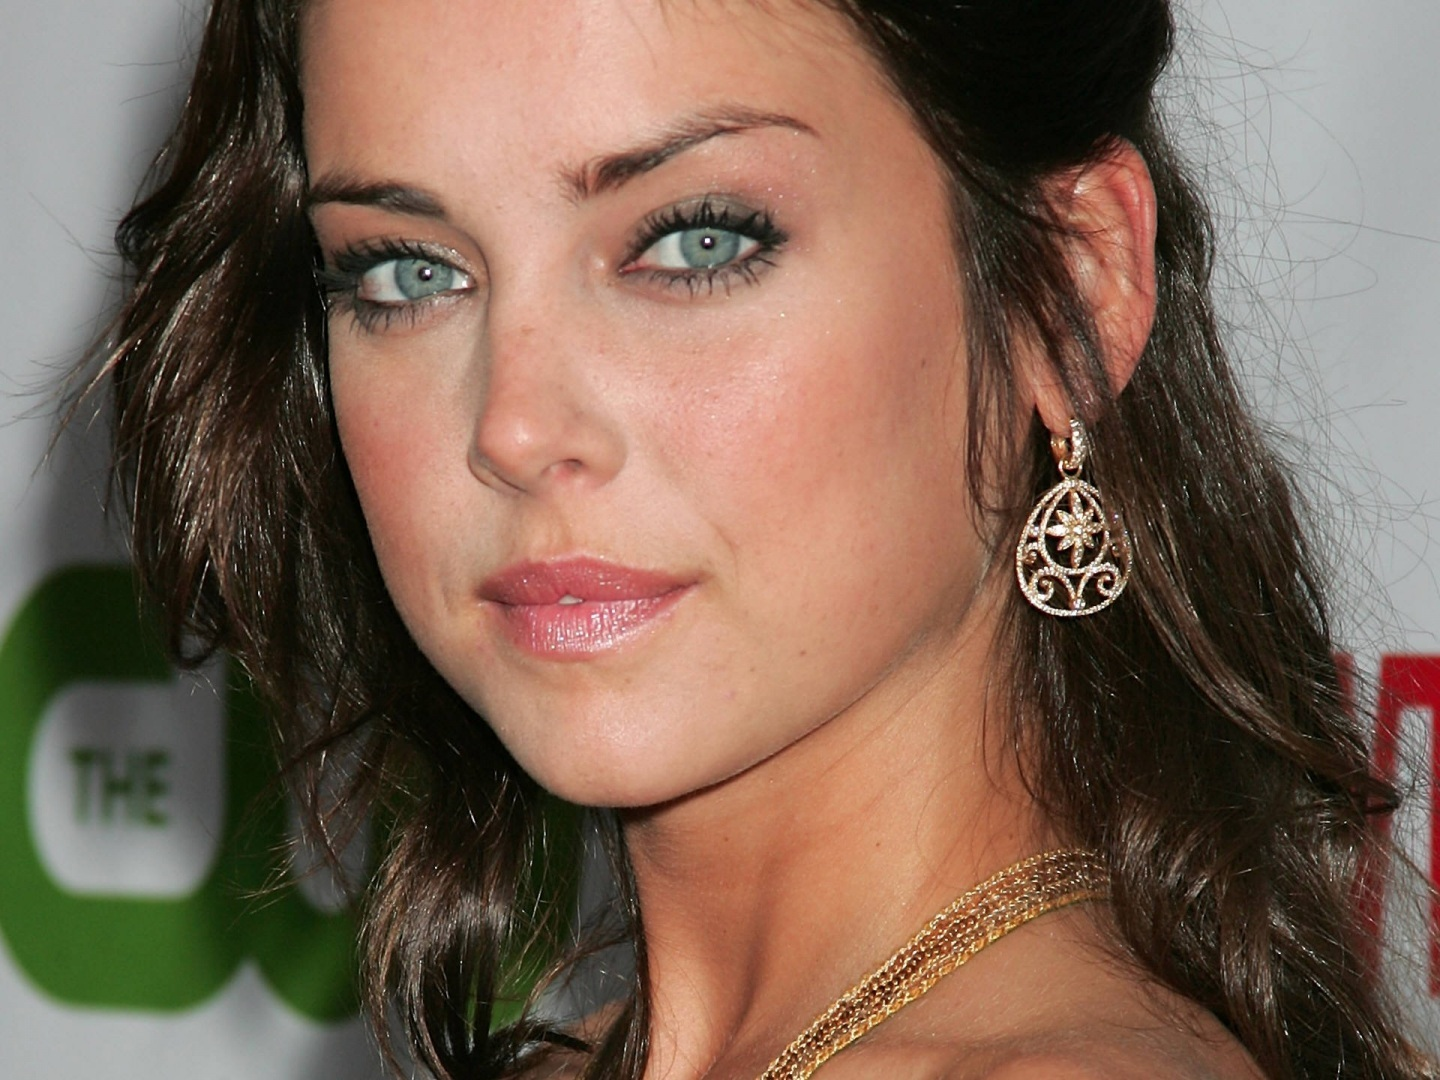 1440x1080 - Jessica Stroup Wallpapers 12